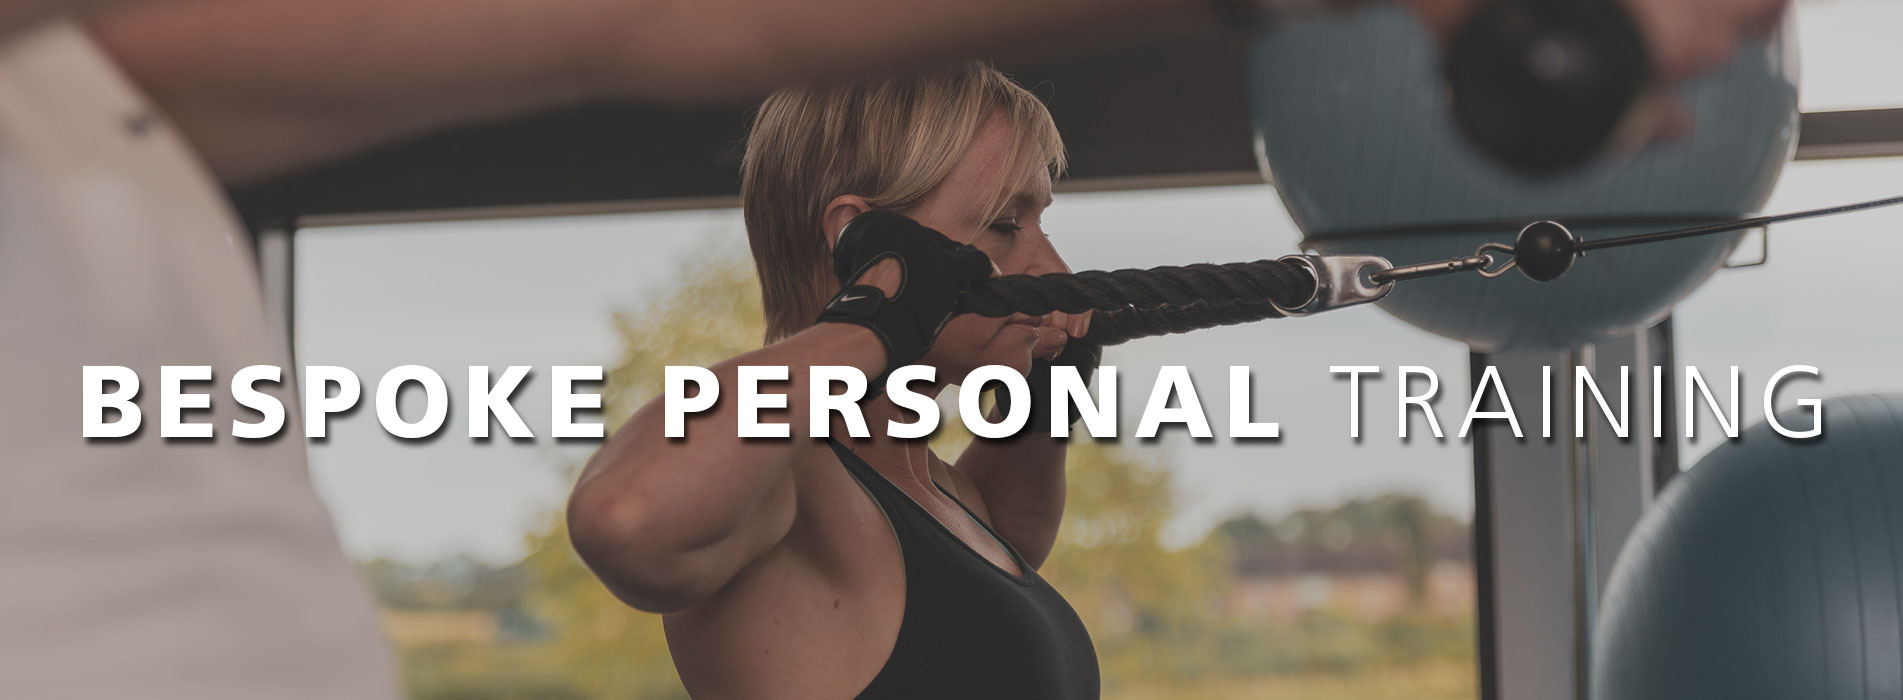 Personal Trainer in Stafford-Upon-Avon